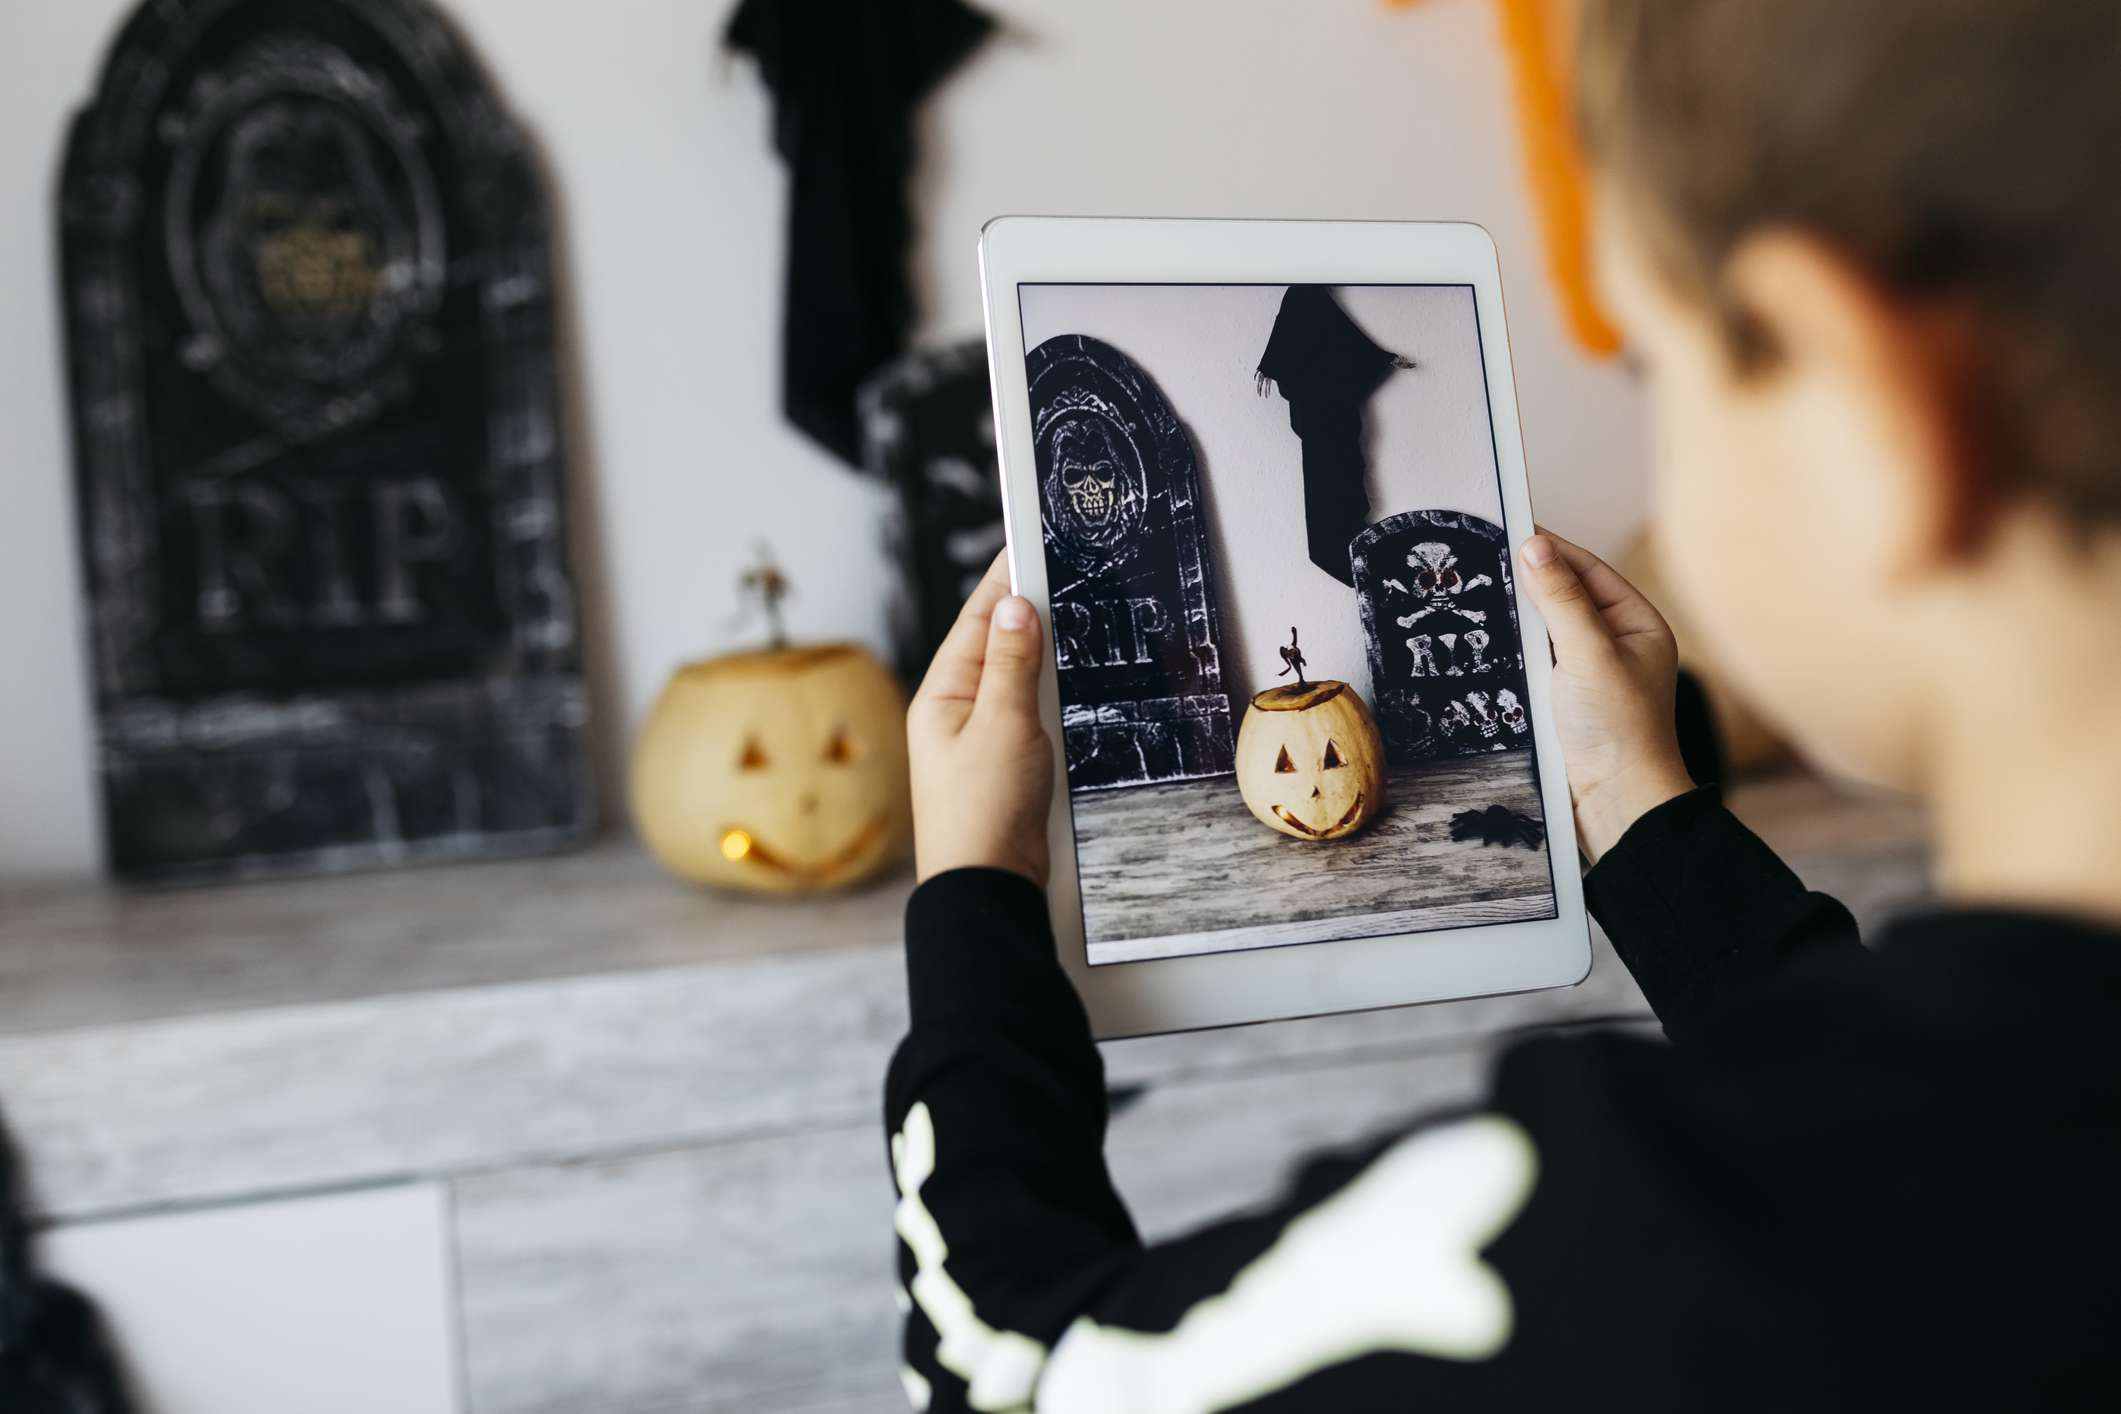 Little boy taking photo of Halloween decoration with digital tablet